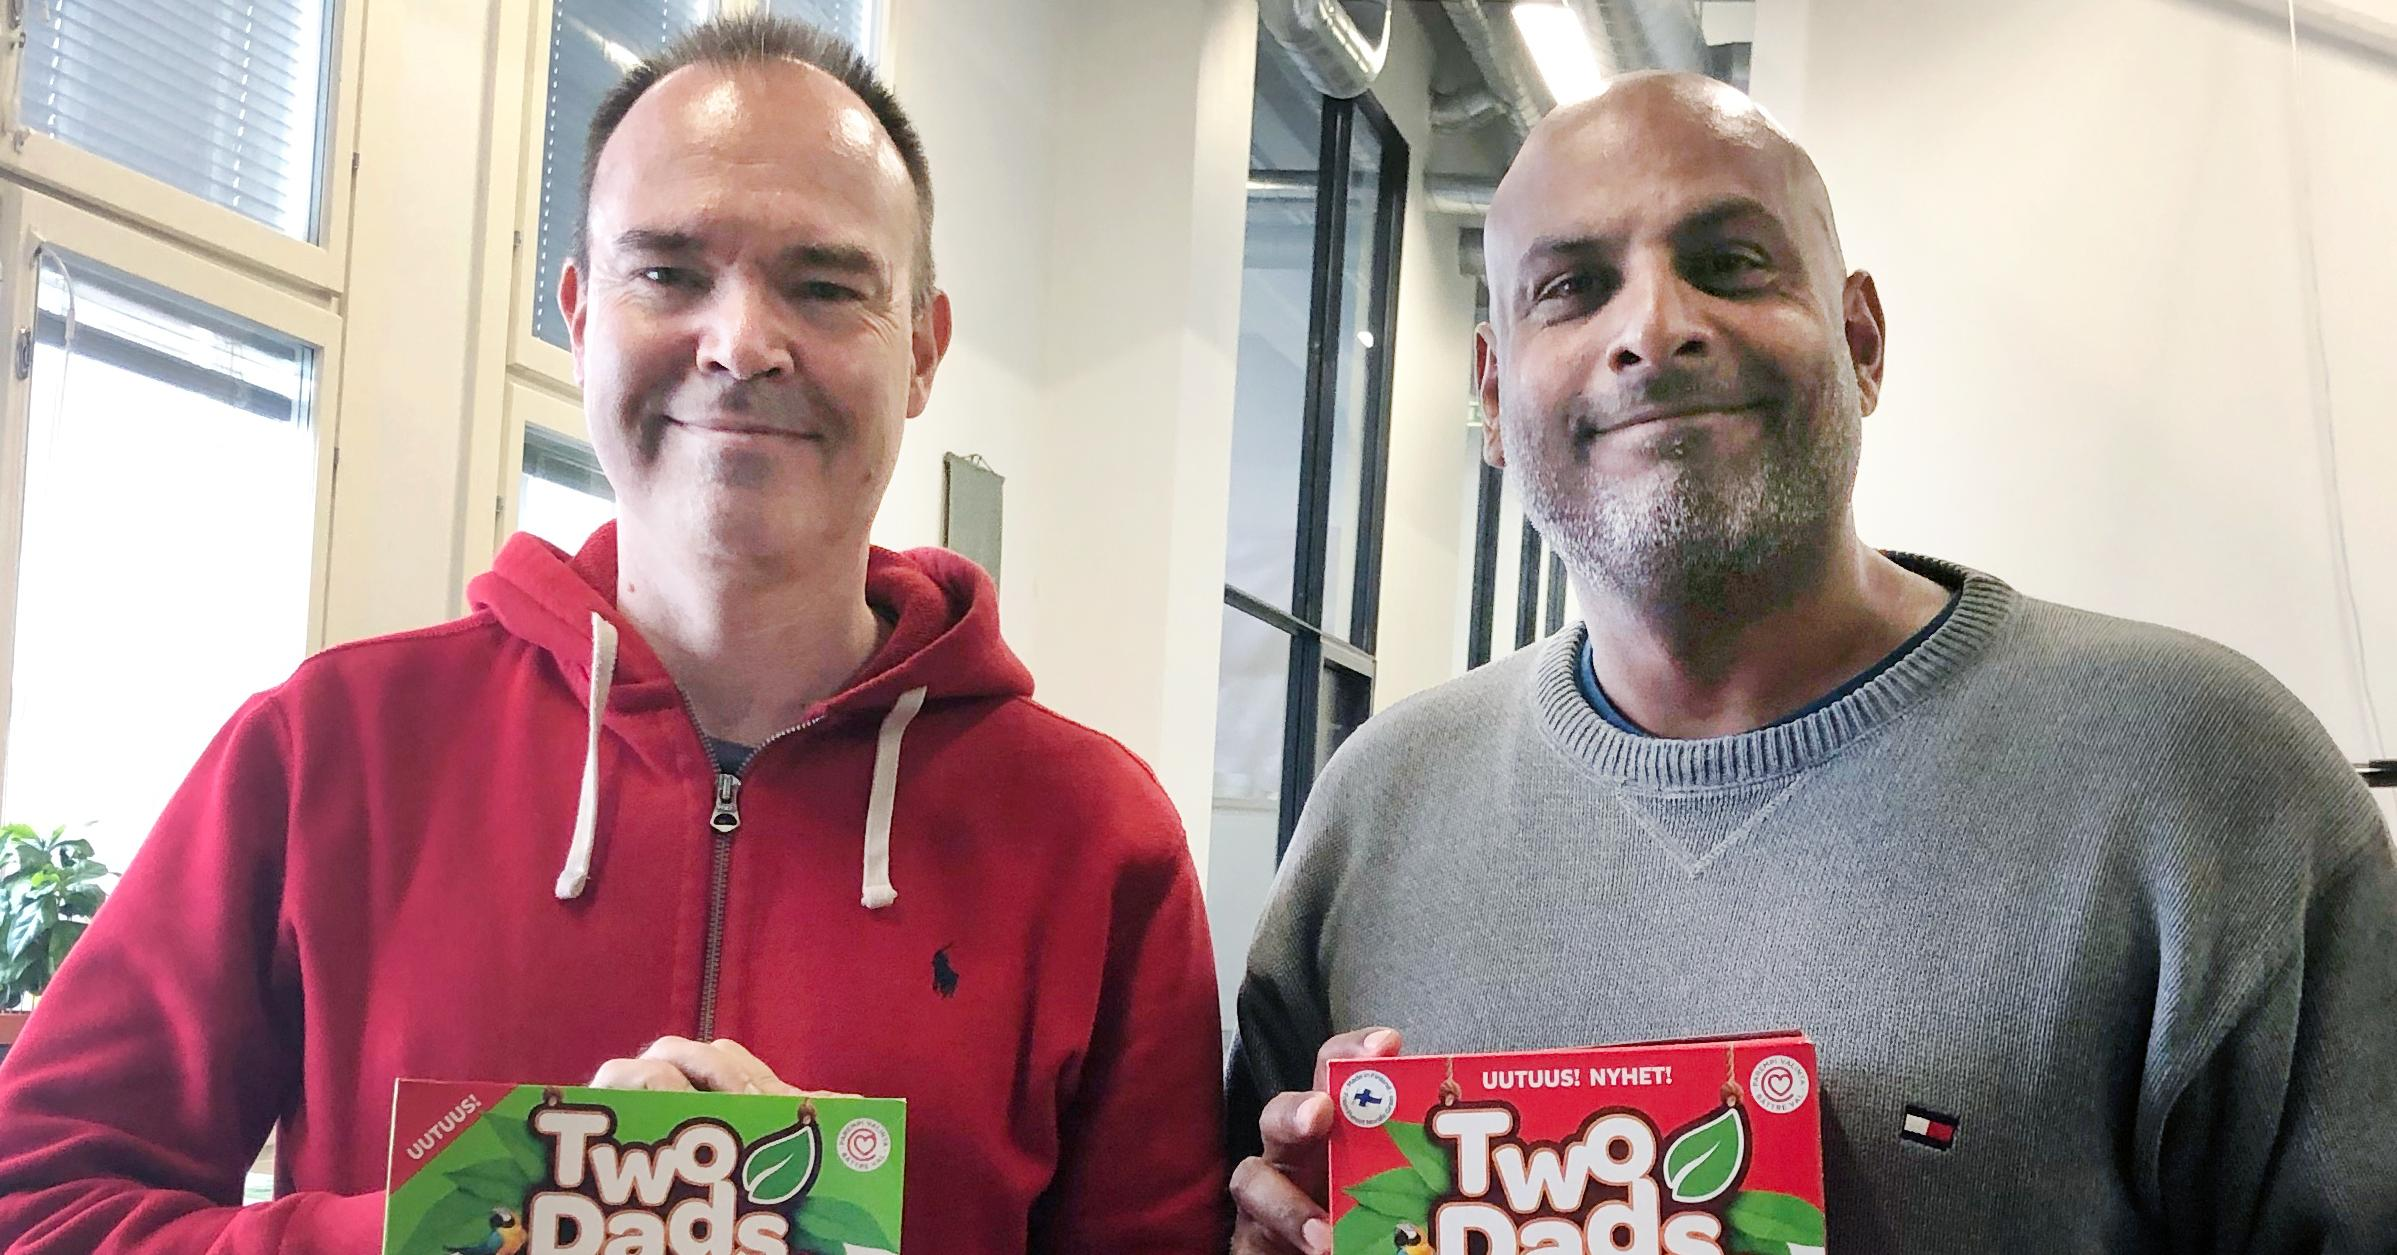 Peter Vesterbacka and Tino Singh holding TwoDads® breakfast cereals